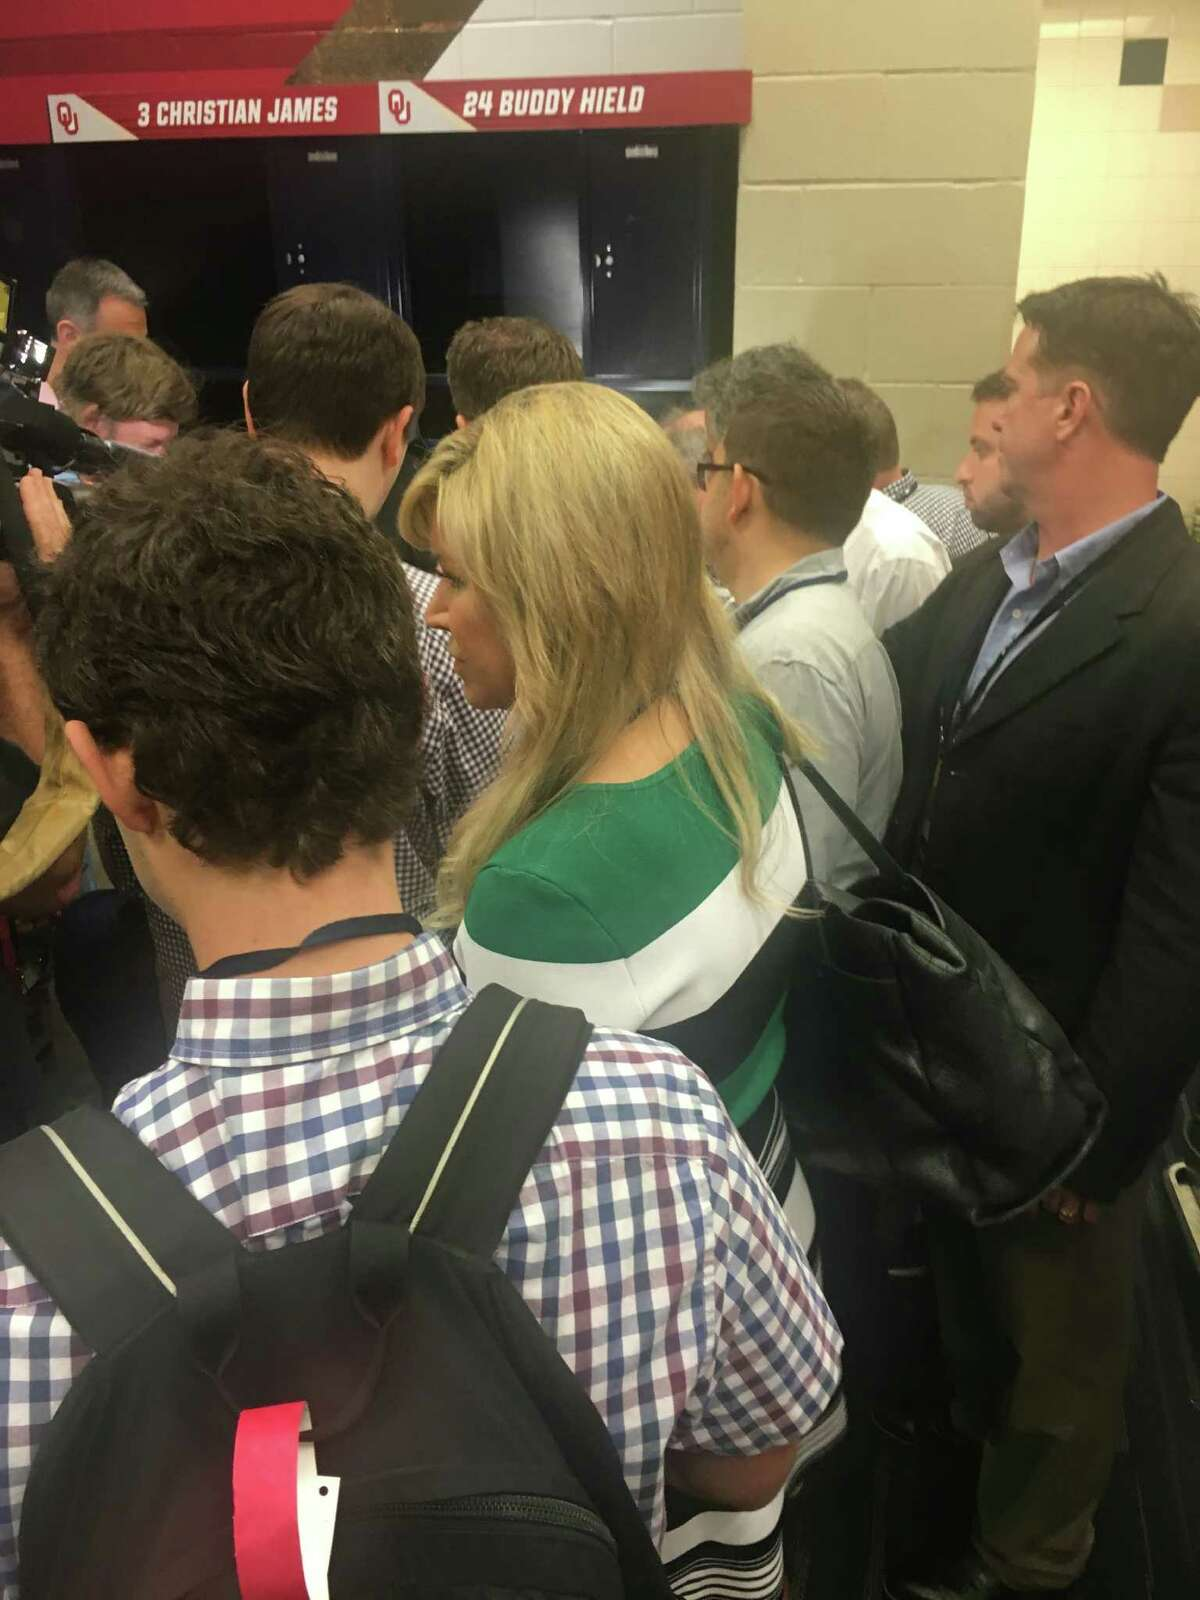 Oklahoma star Buddy Hield is swarmed by the media during the Sooners' media availability Thursday at NRG Stadium.